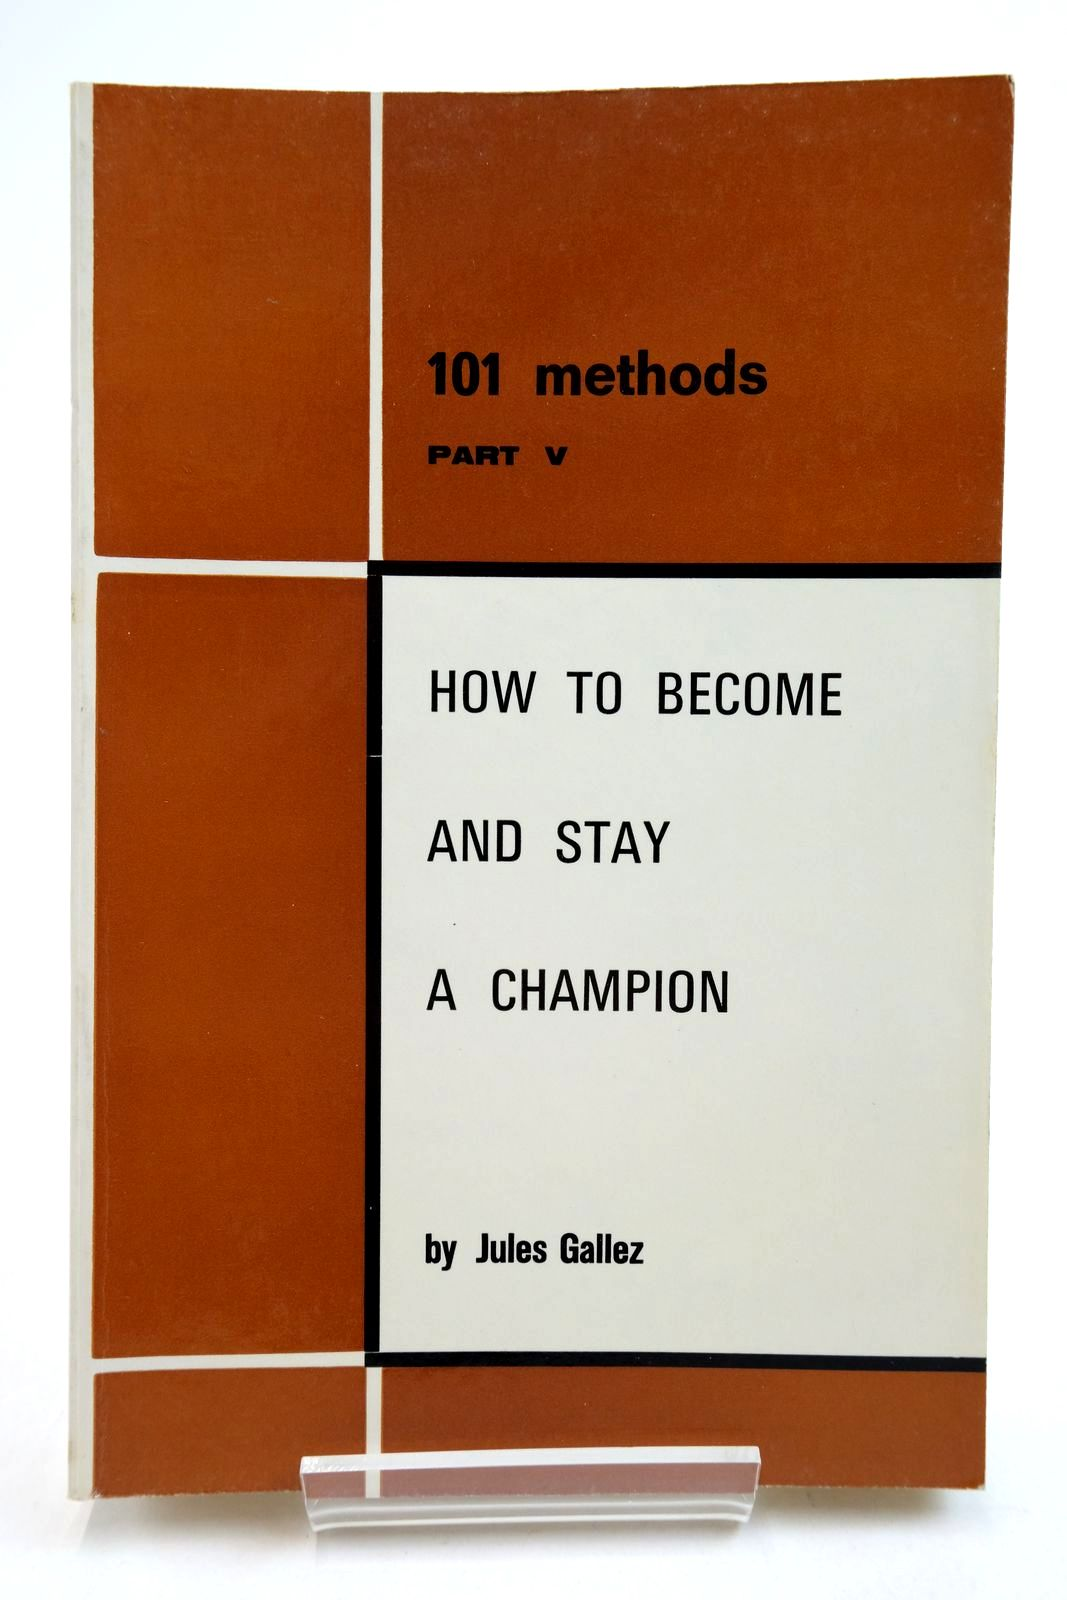 Photo of 101 METHODS PART V HOW TO BECOME AND STAY A CHAMPION- Stock Number: 2134811